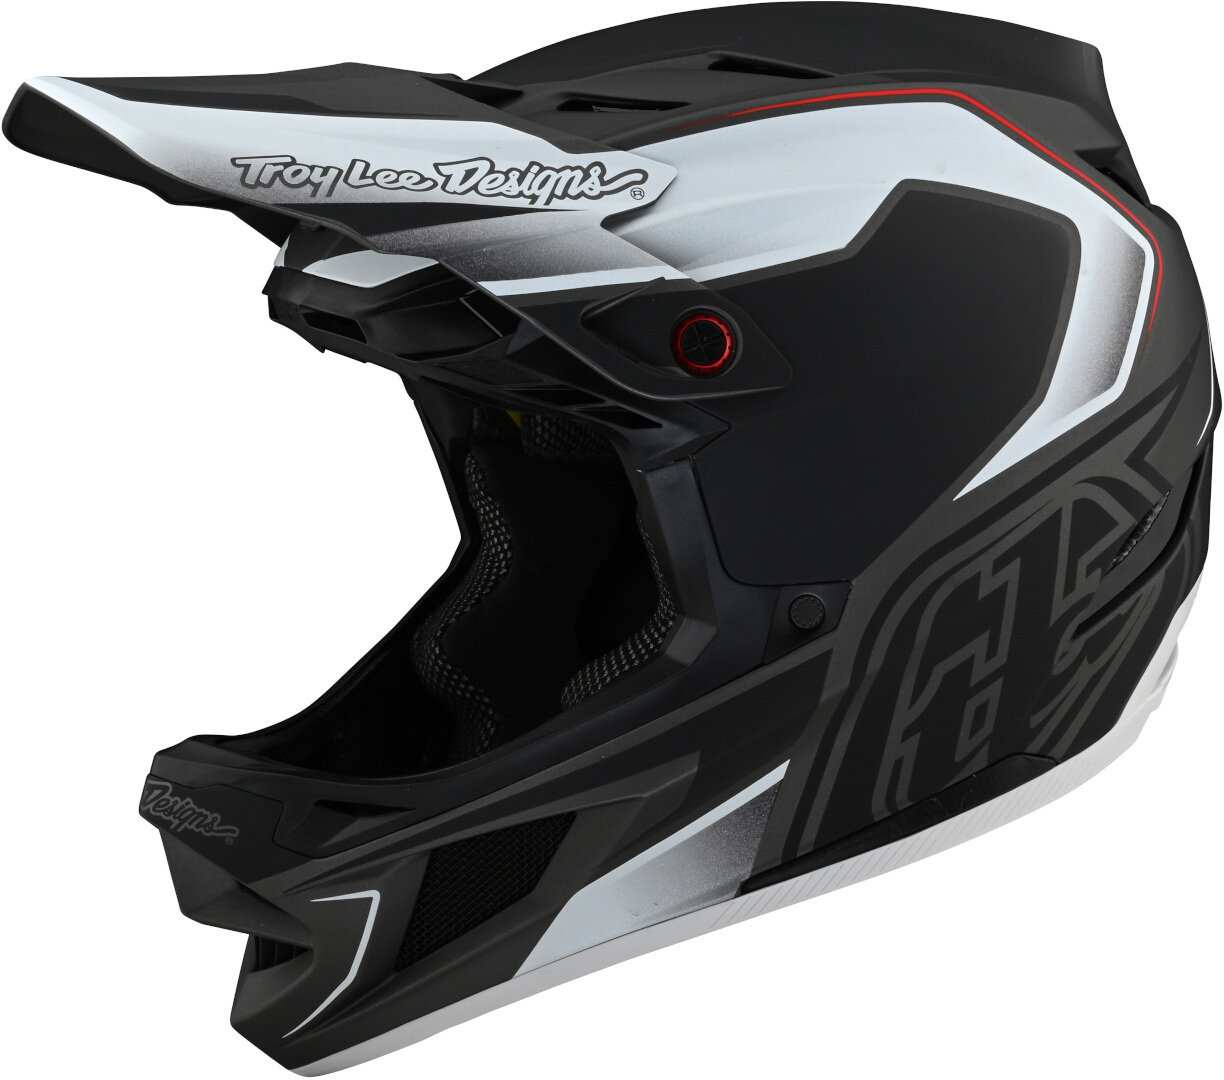 Troy Lee Designs D4 Exile MIPS Downhill Helm, schwarz-weiss, Größe S, schwarz-weiss, Größe S